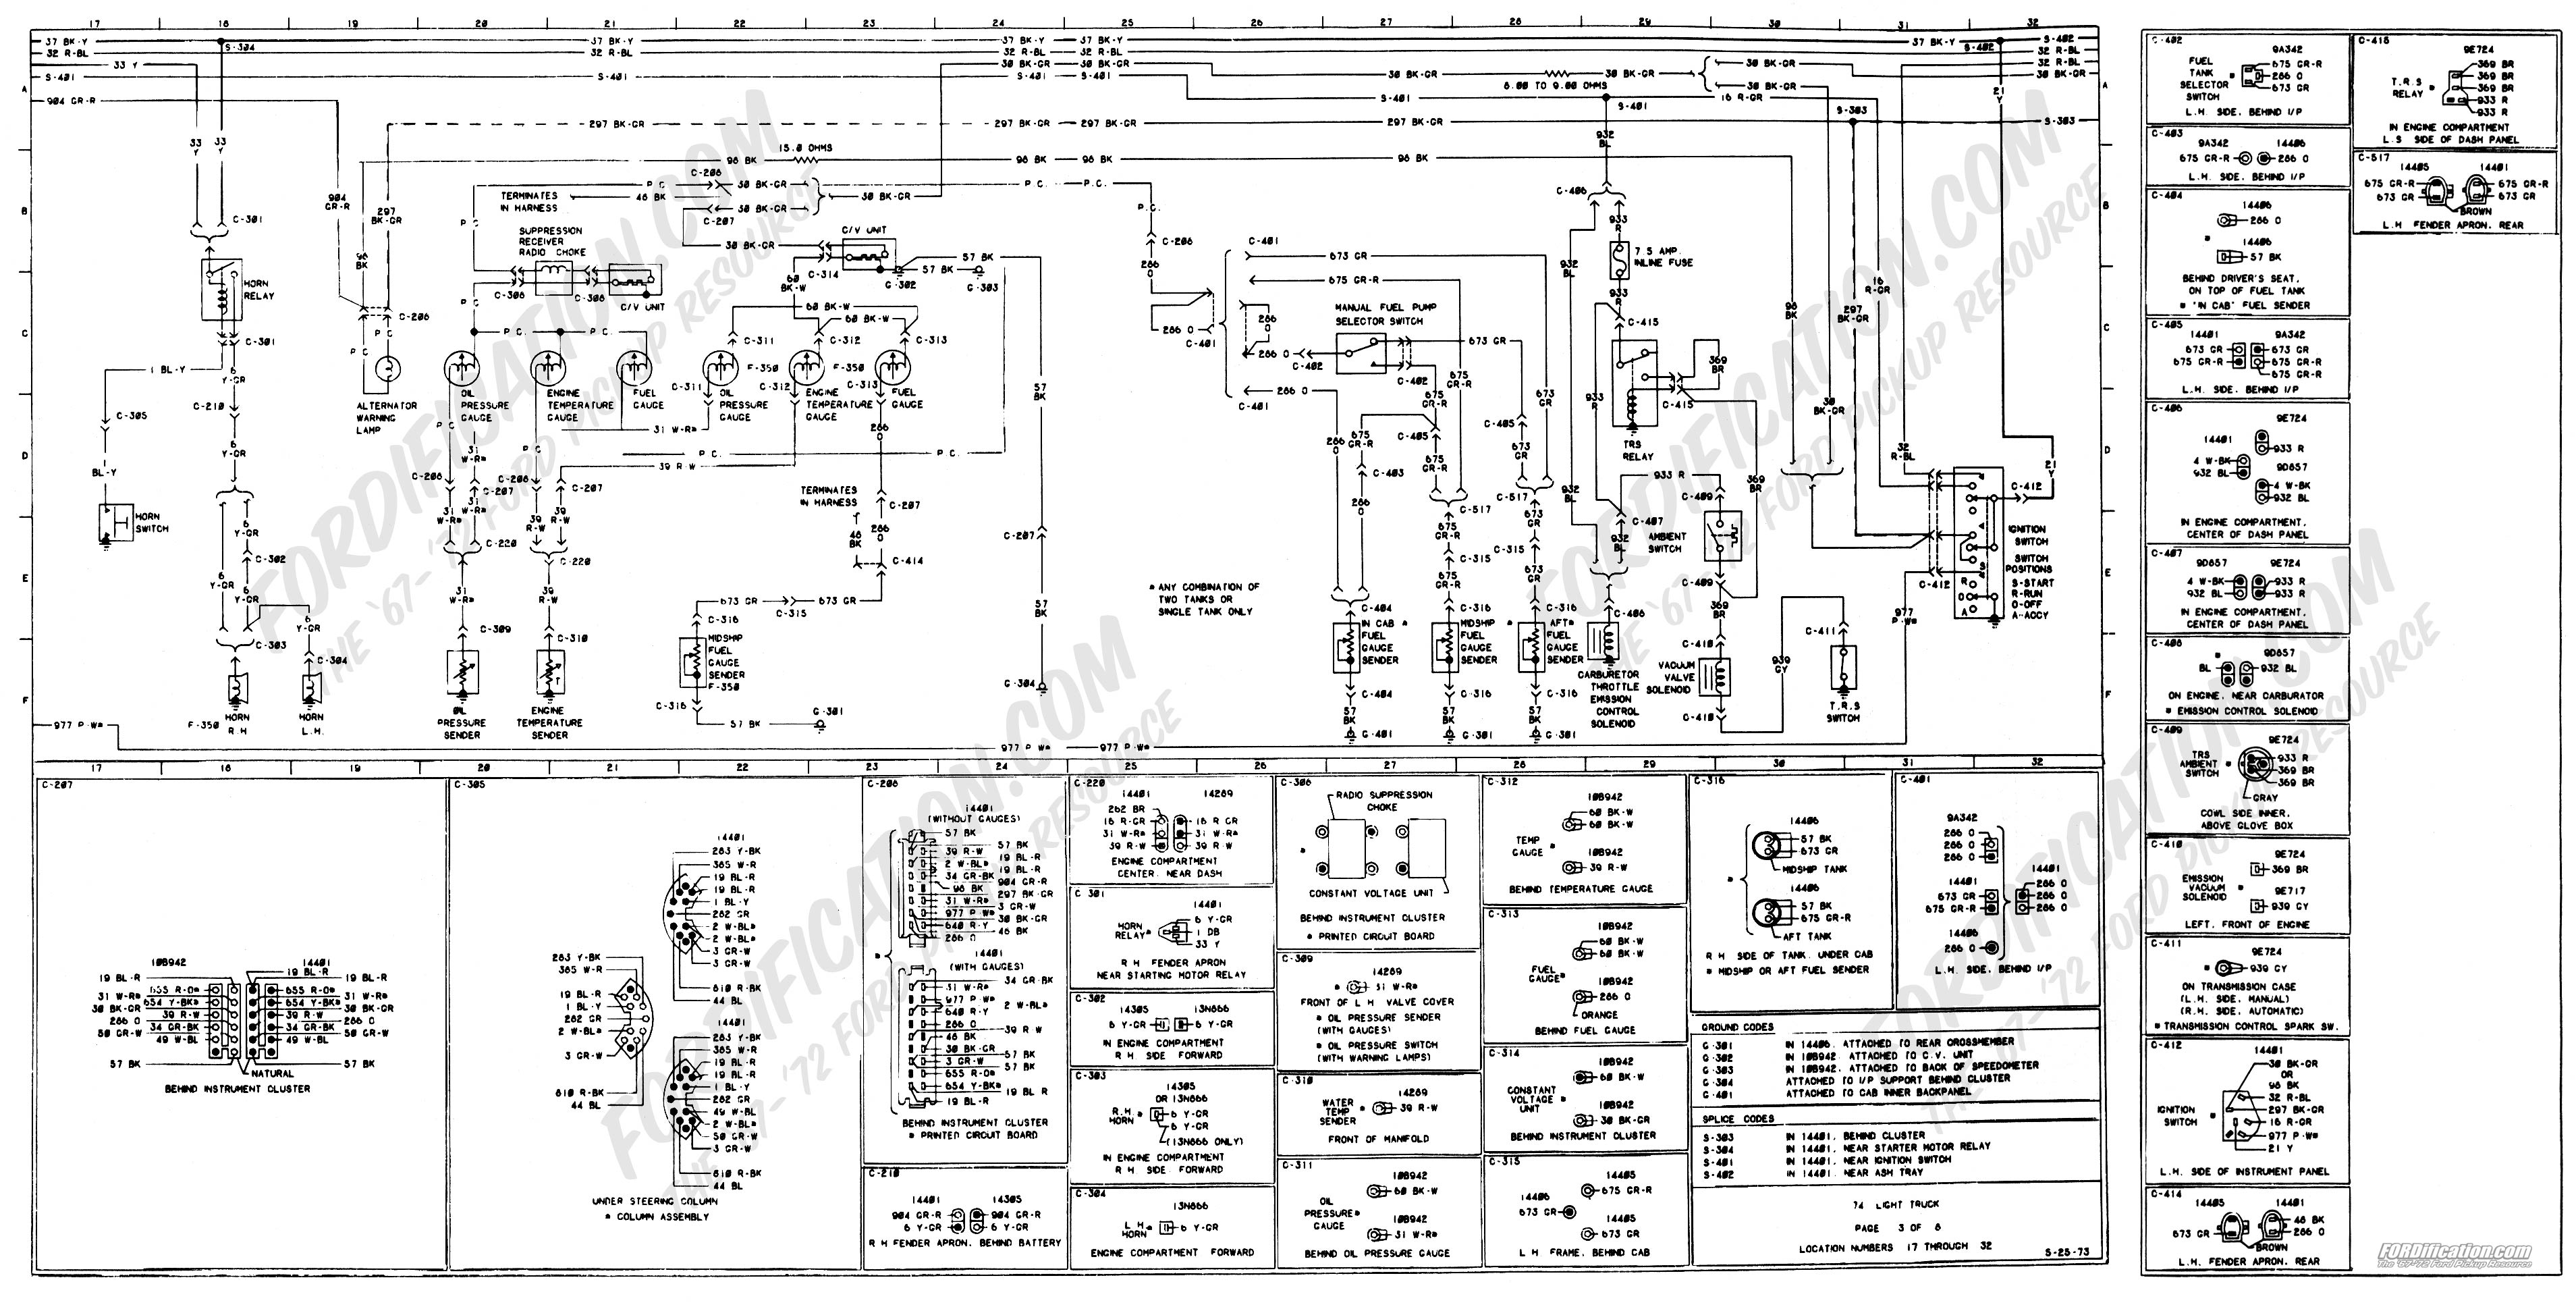 Install 2000 Ford F550 Fuse Diagram Dash Wiring F750 1973 1979 Truck Diagrams Schematics 1999 F450 Box Under